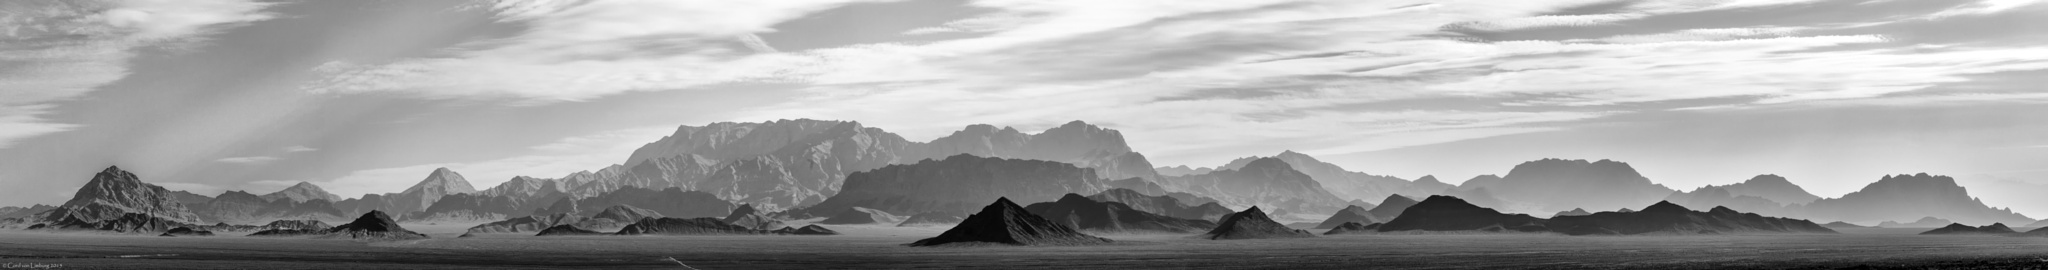 Desert Mountains (Panorama) by Cord von Limburg